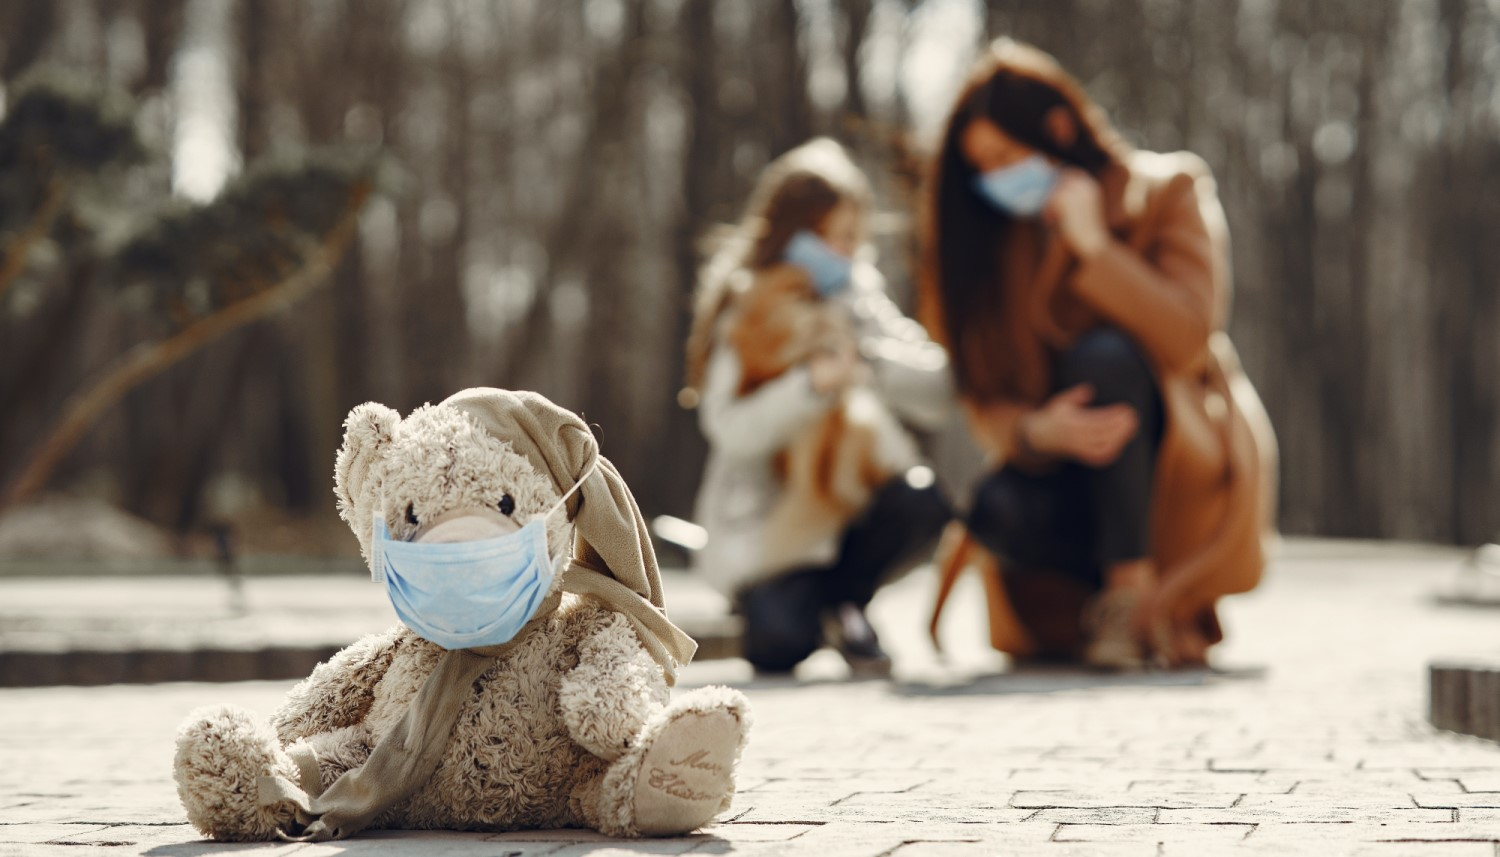 shabby-teddy-bear-in-medical-mask-sitting-on-pavement-4000604 crpd sml